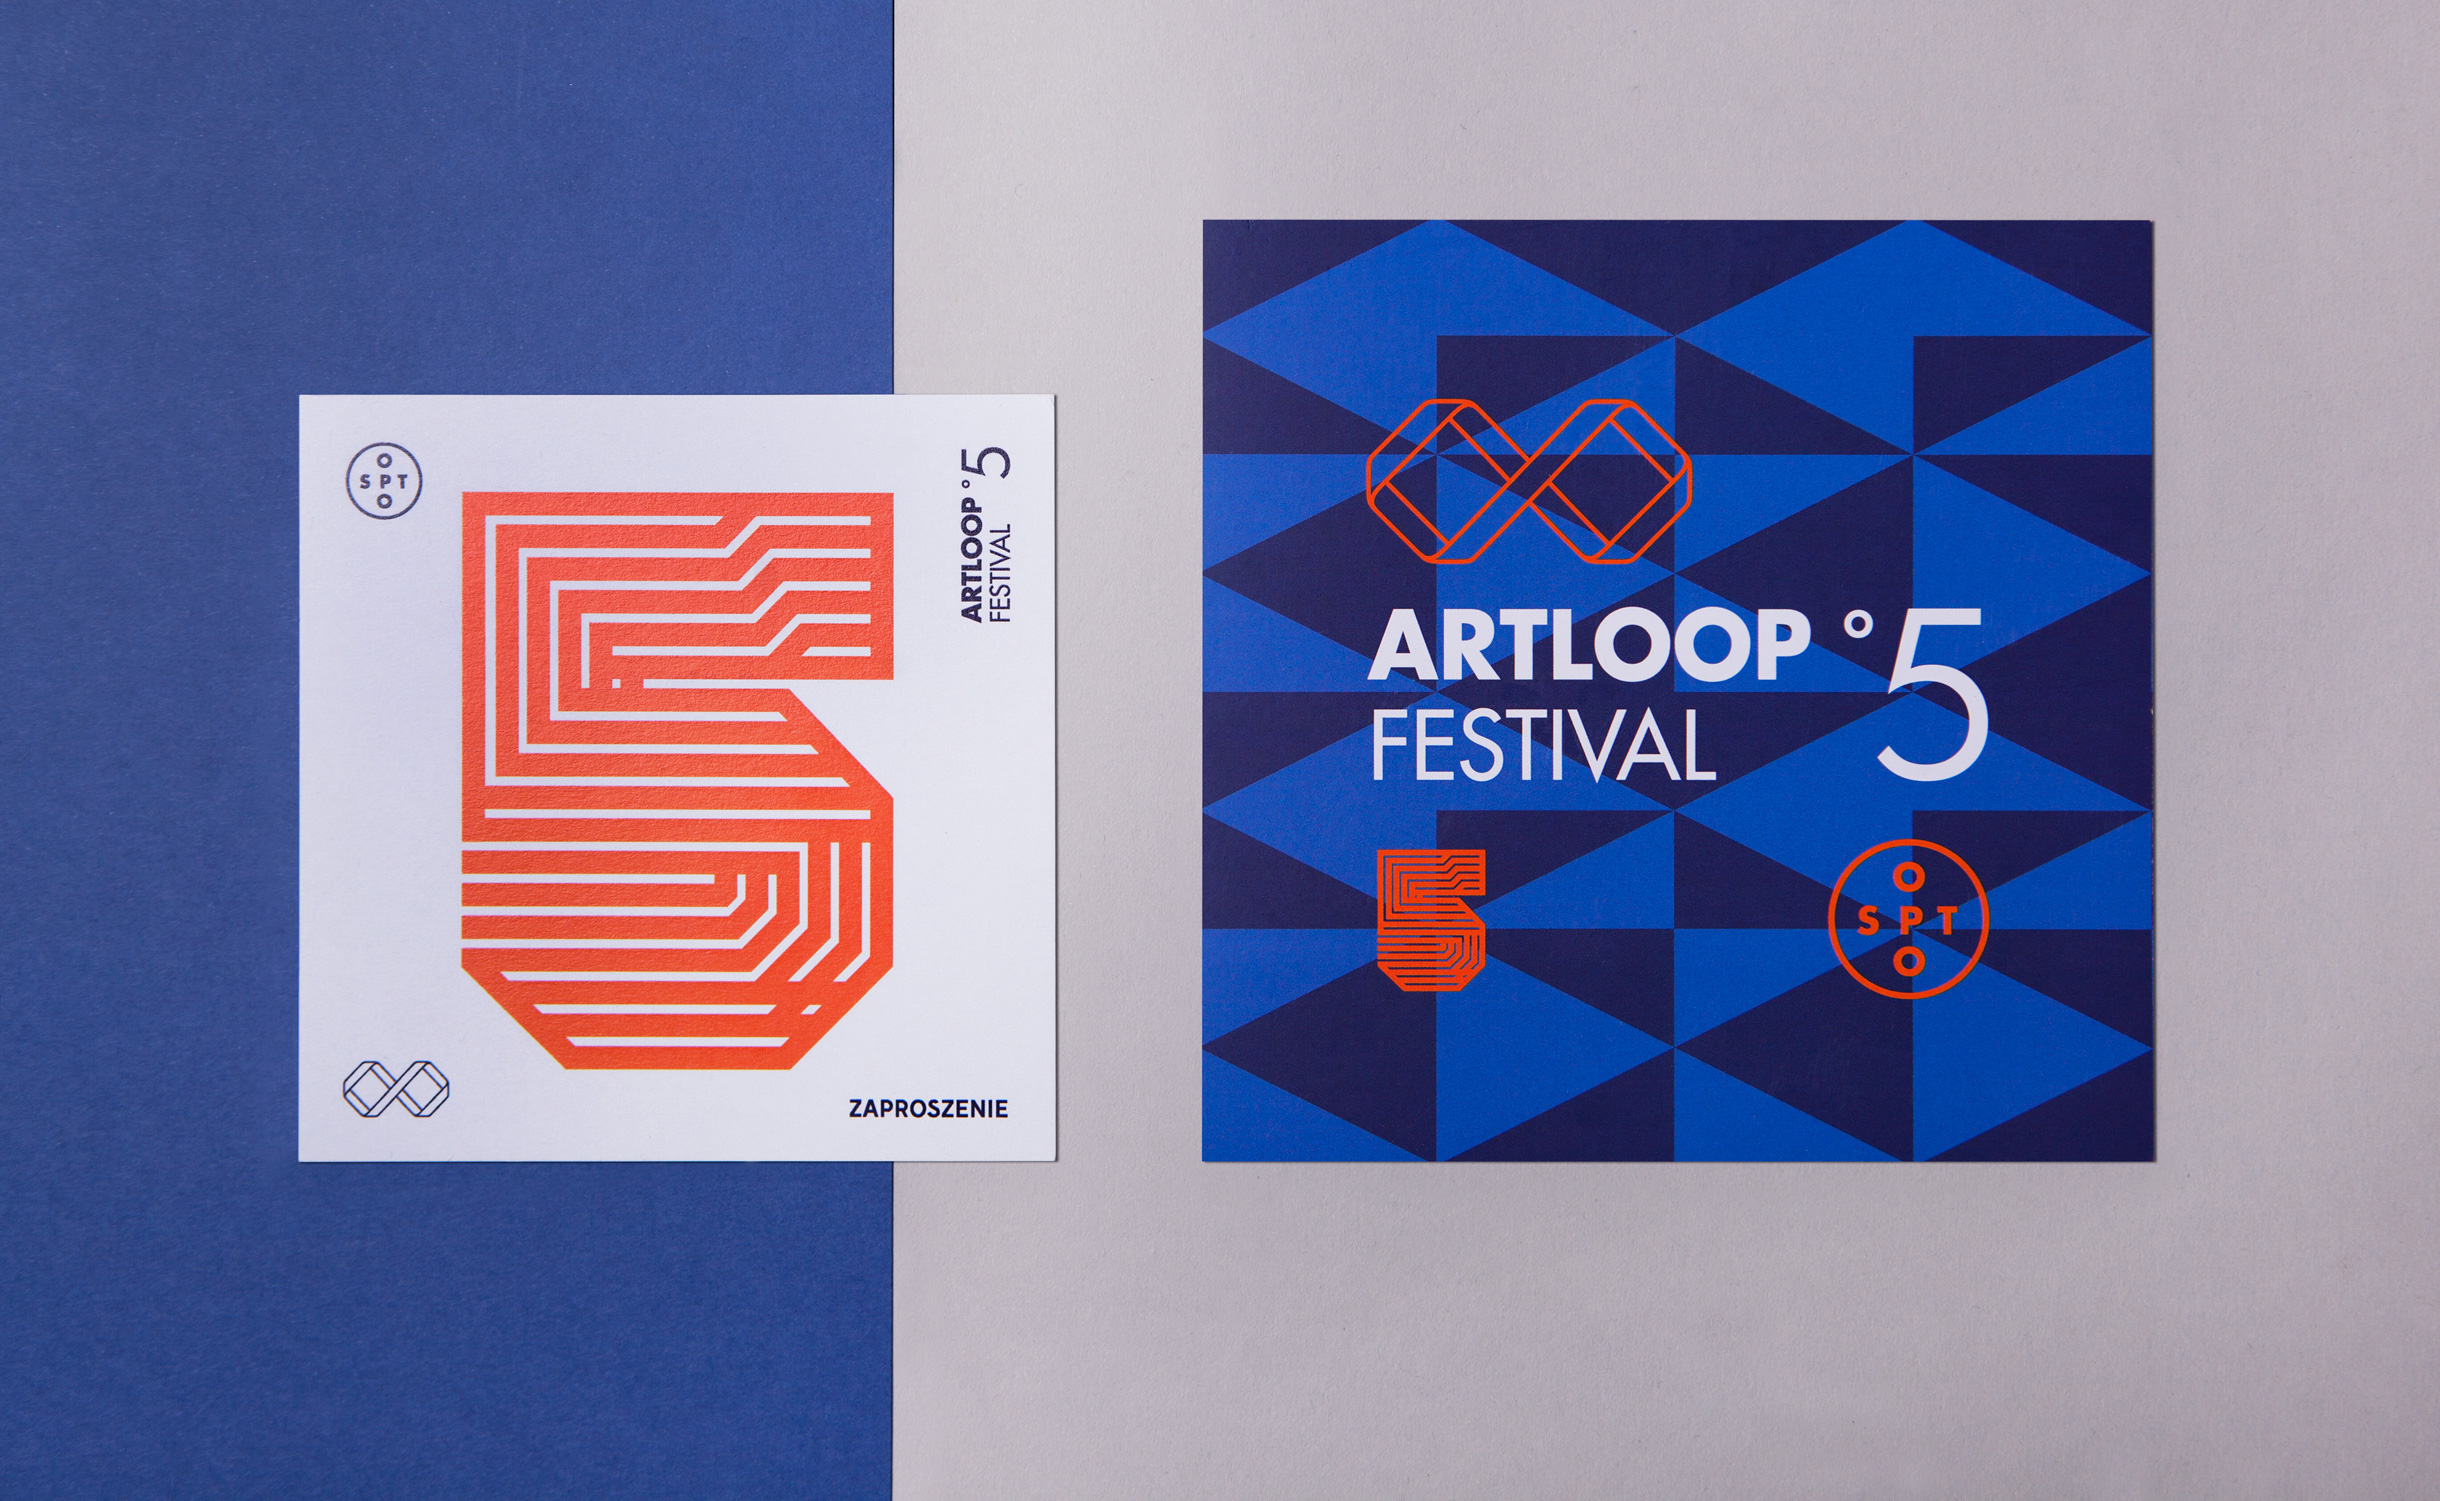 Print design - Artloop Festival 2016 by Uniforma